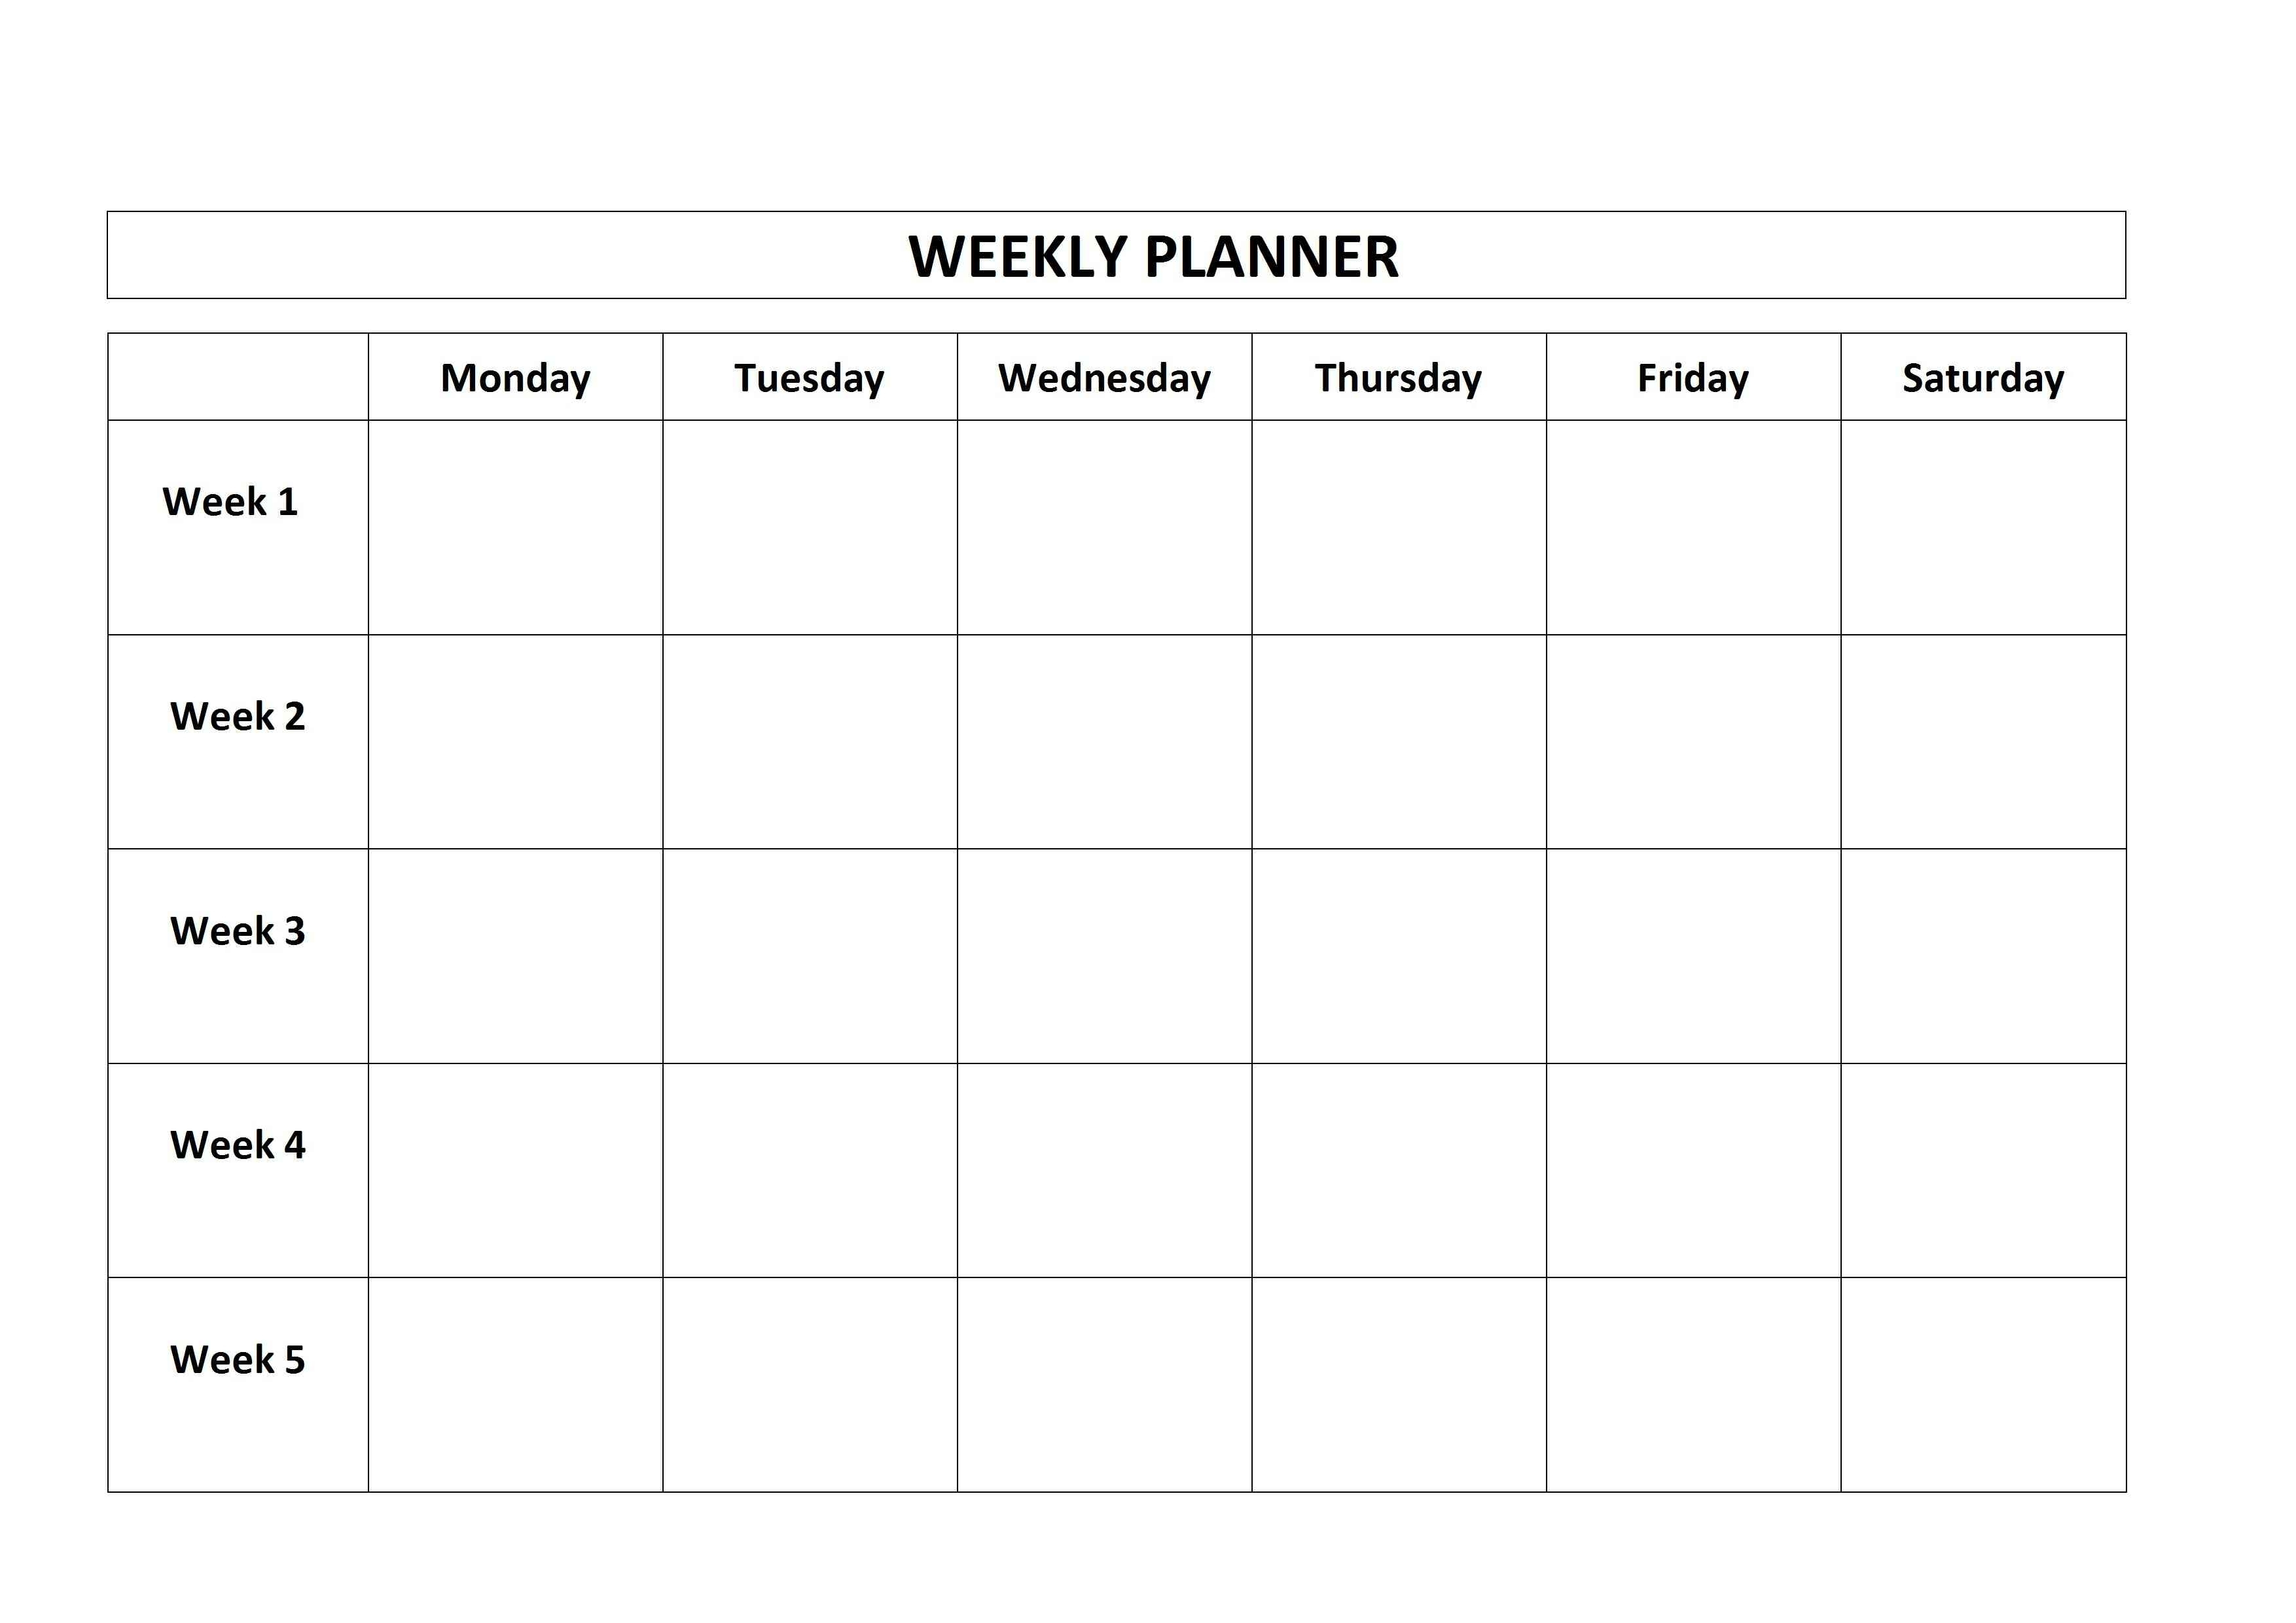 022 Two Week Calendar Template Blank Baskan Idai Co Within Blanktwo with Template Monday Through Friday Calendar